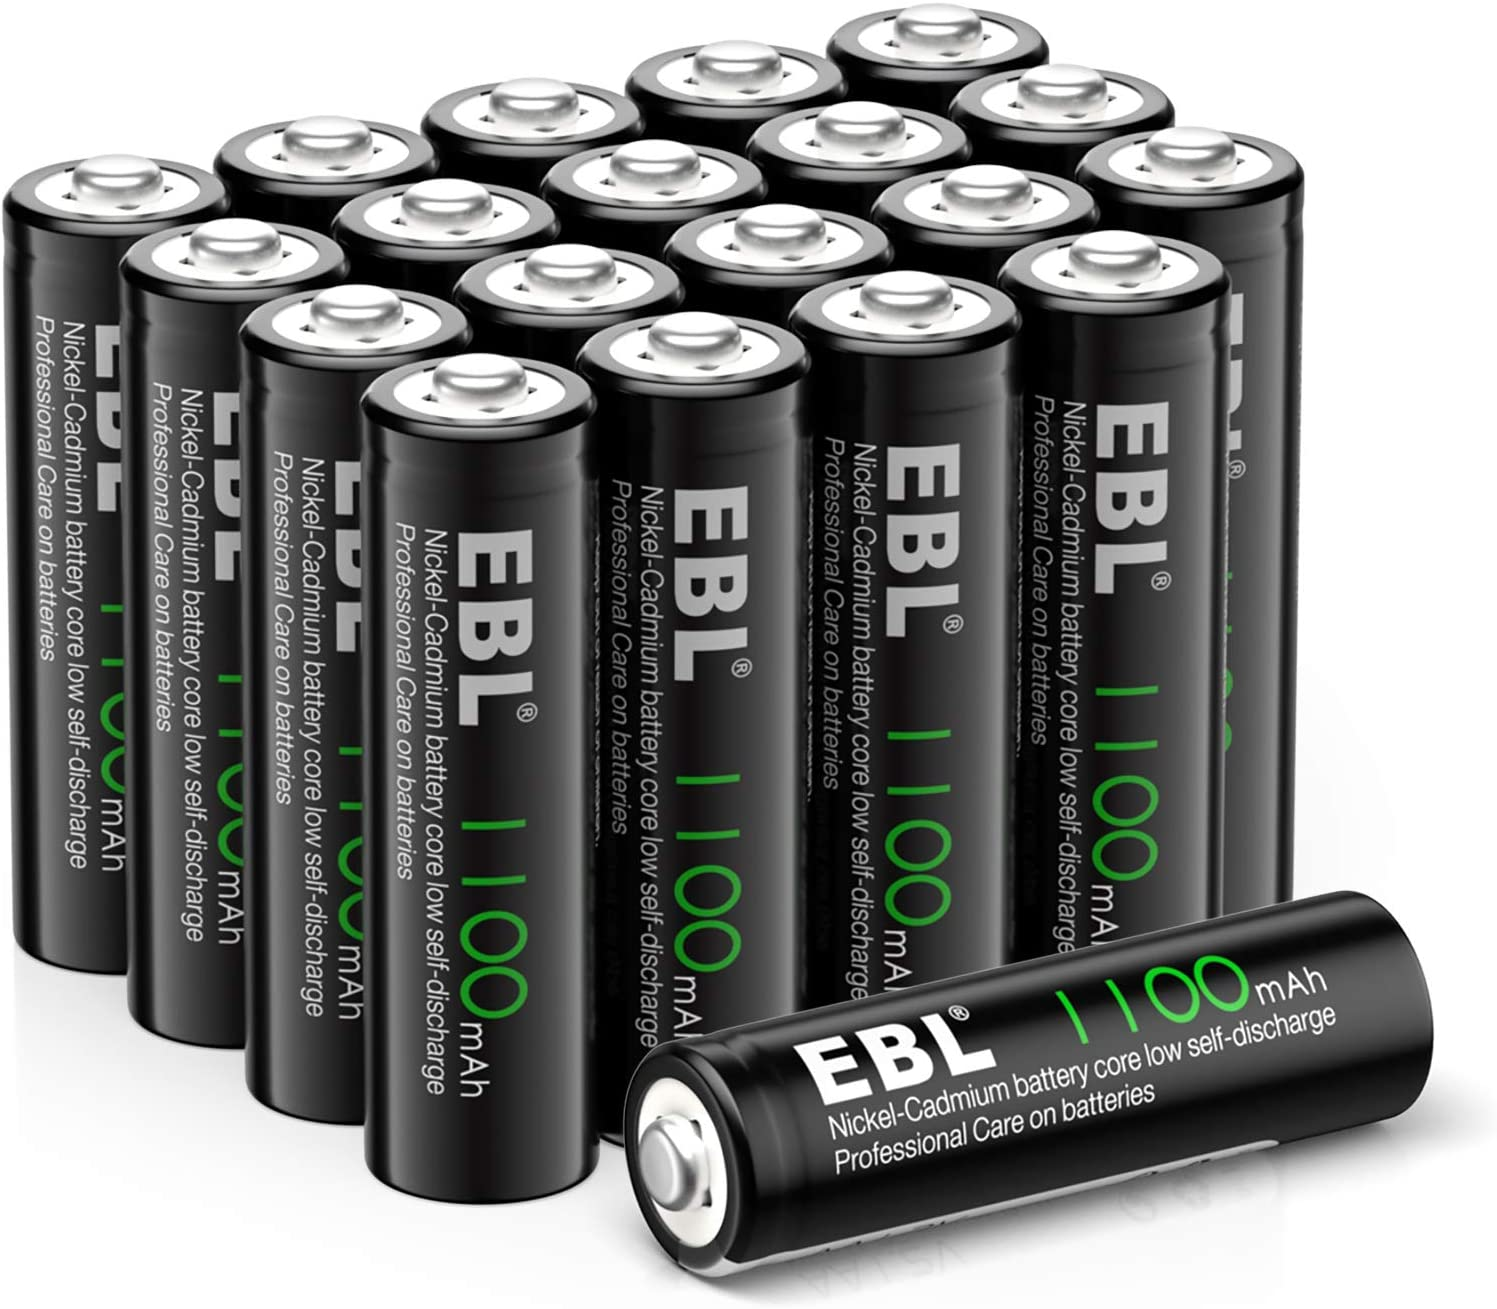 EBL NiCAD Rechargeable Batteries for Solar Lights